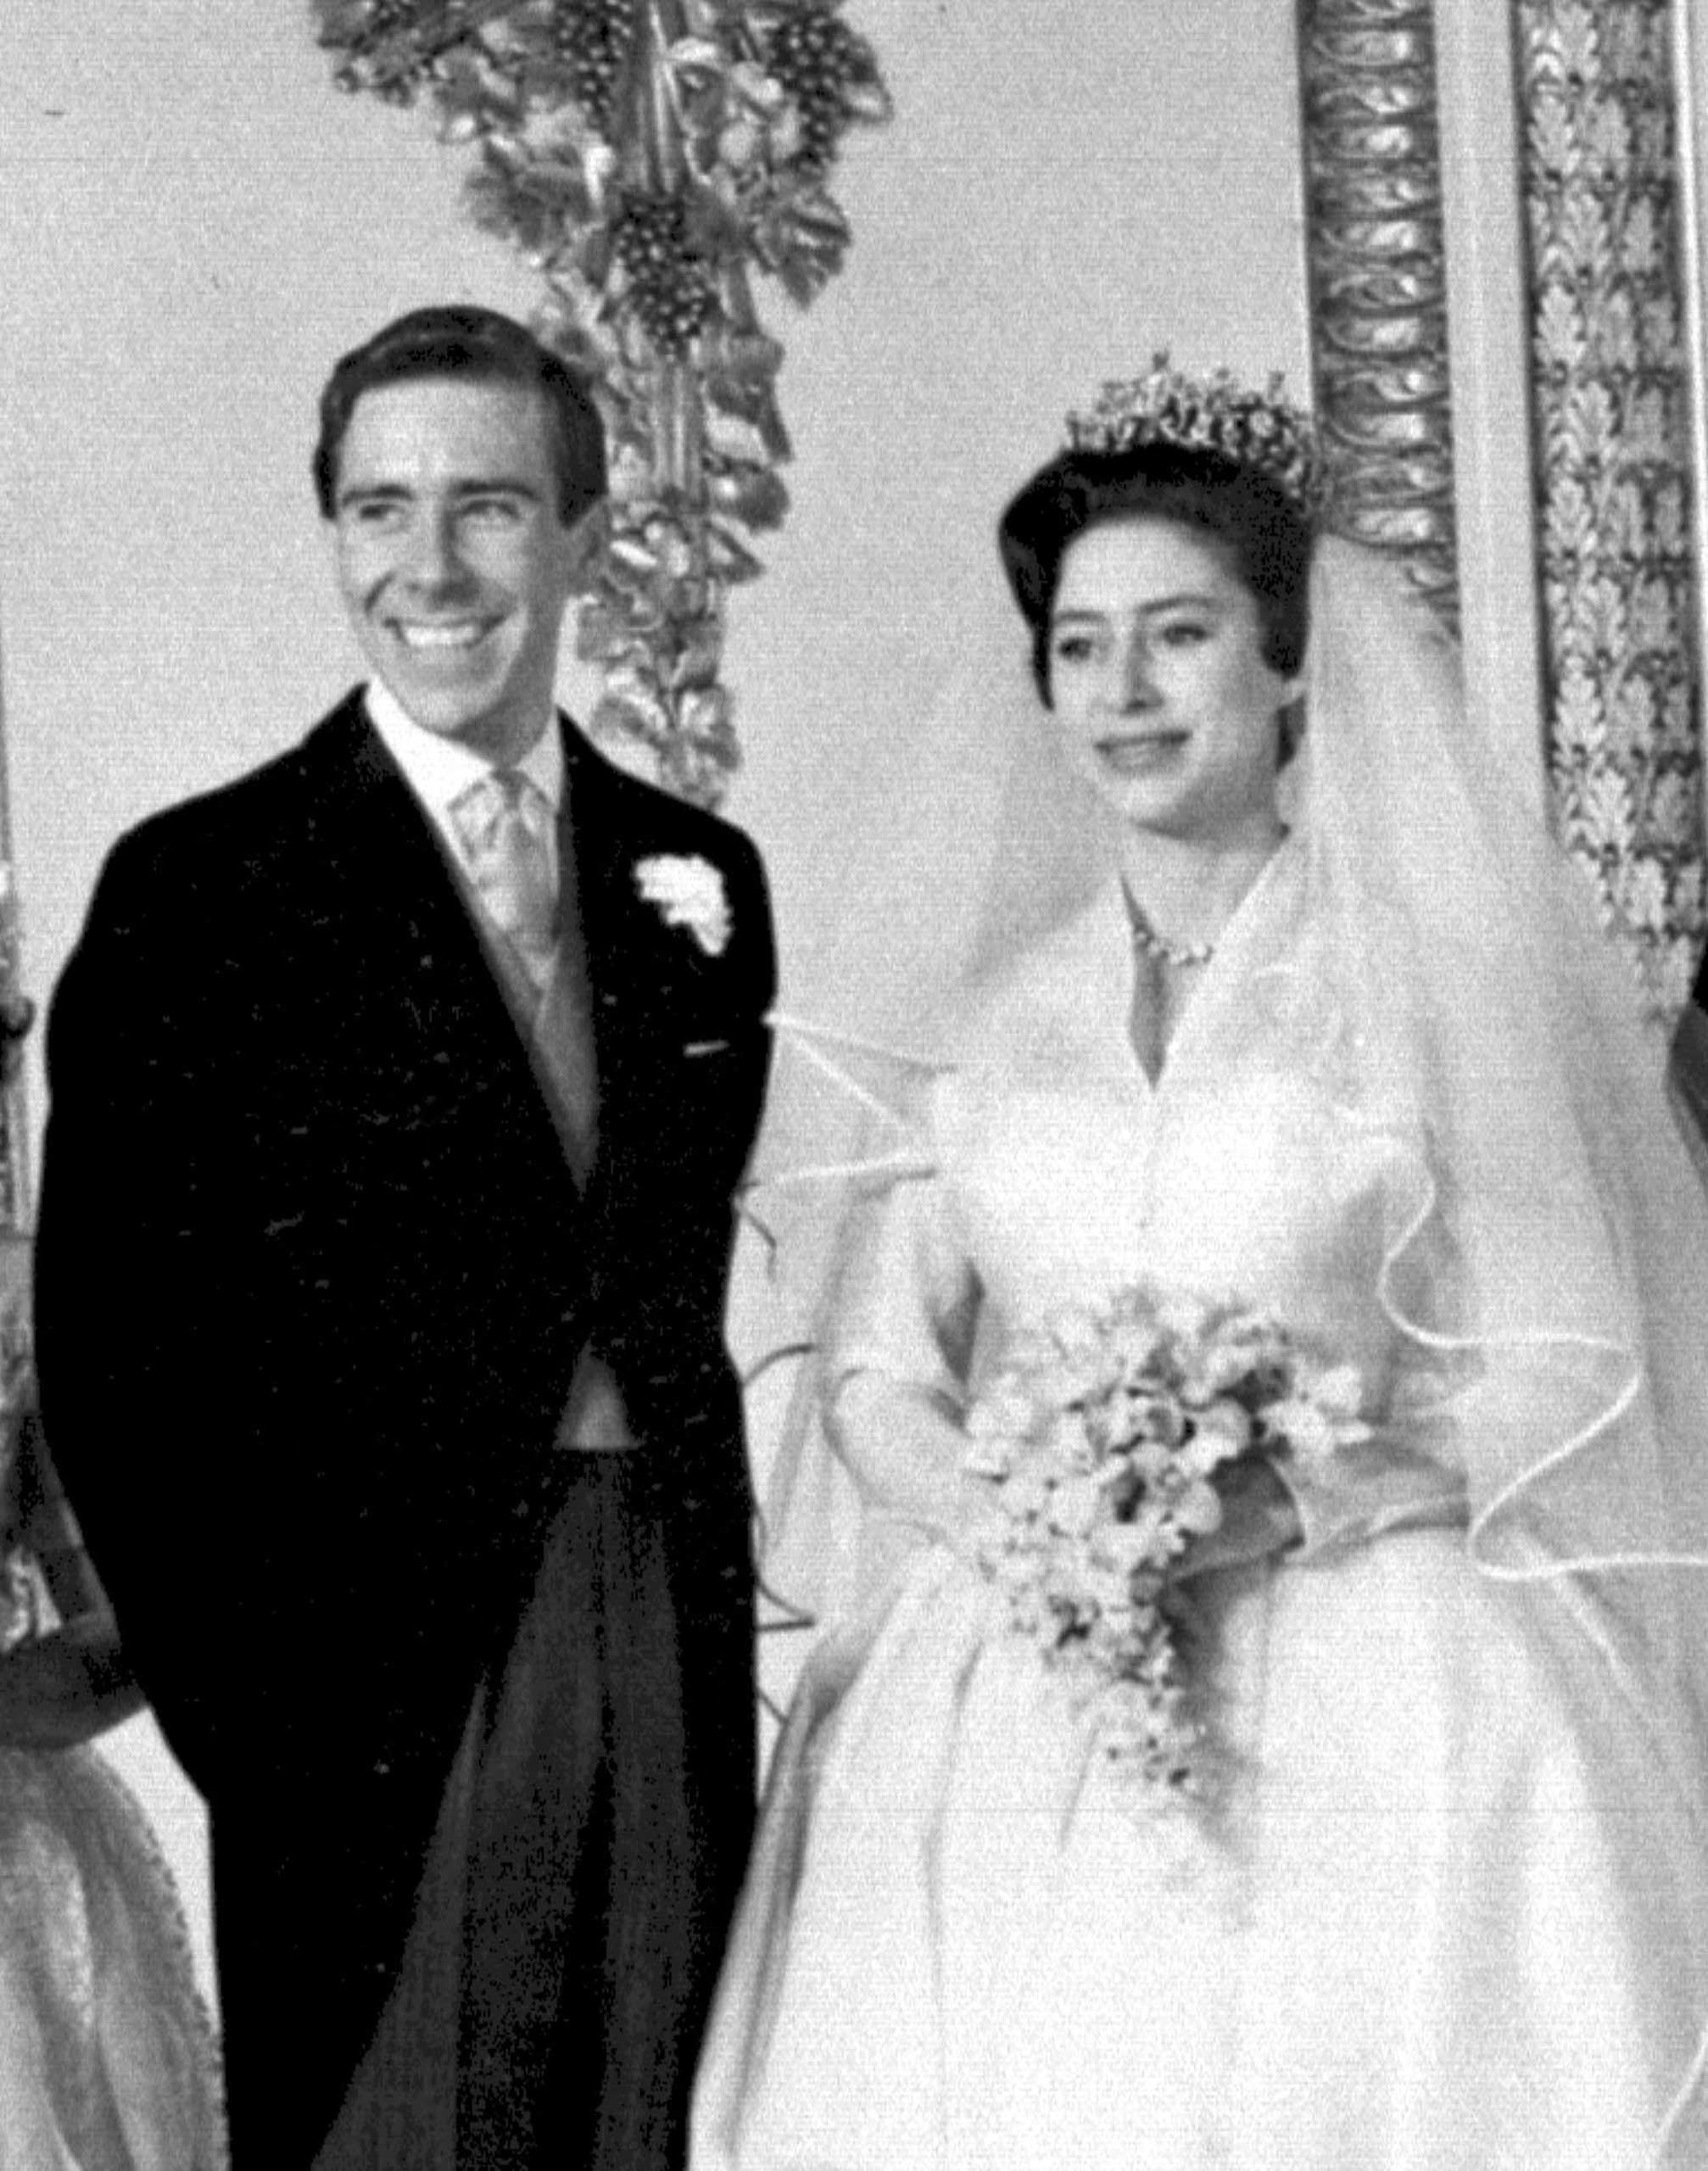 Princess Margaret and Anthony Armstrong-Jones at Buckingham Palace at their marriage ceremony at Westminster Abbey, London on May 6, 1960.